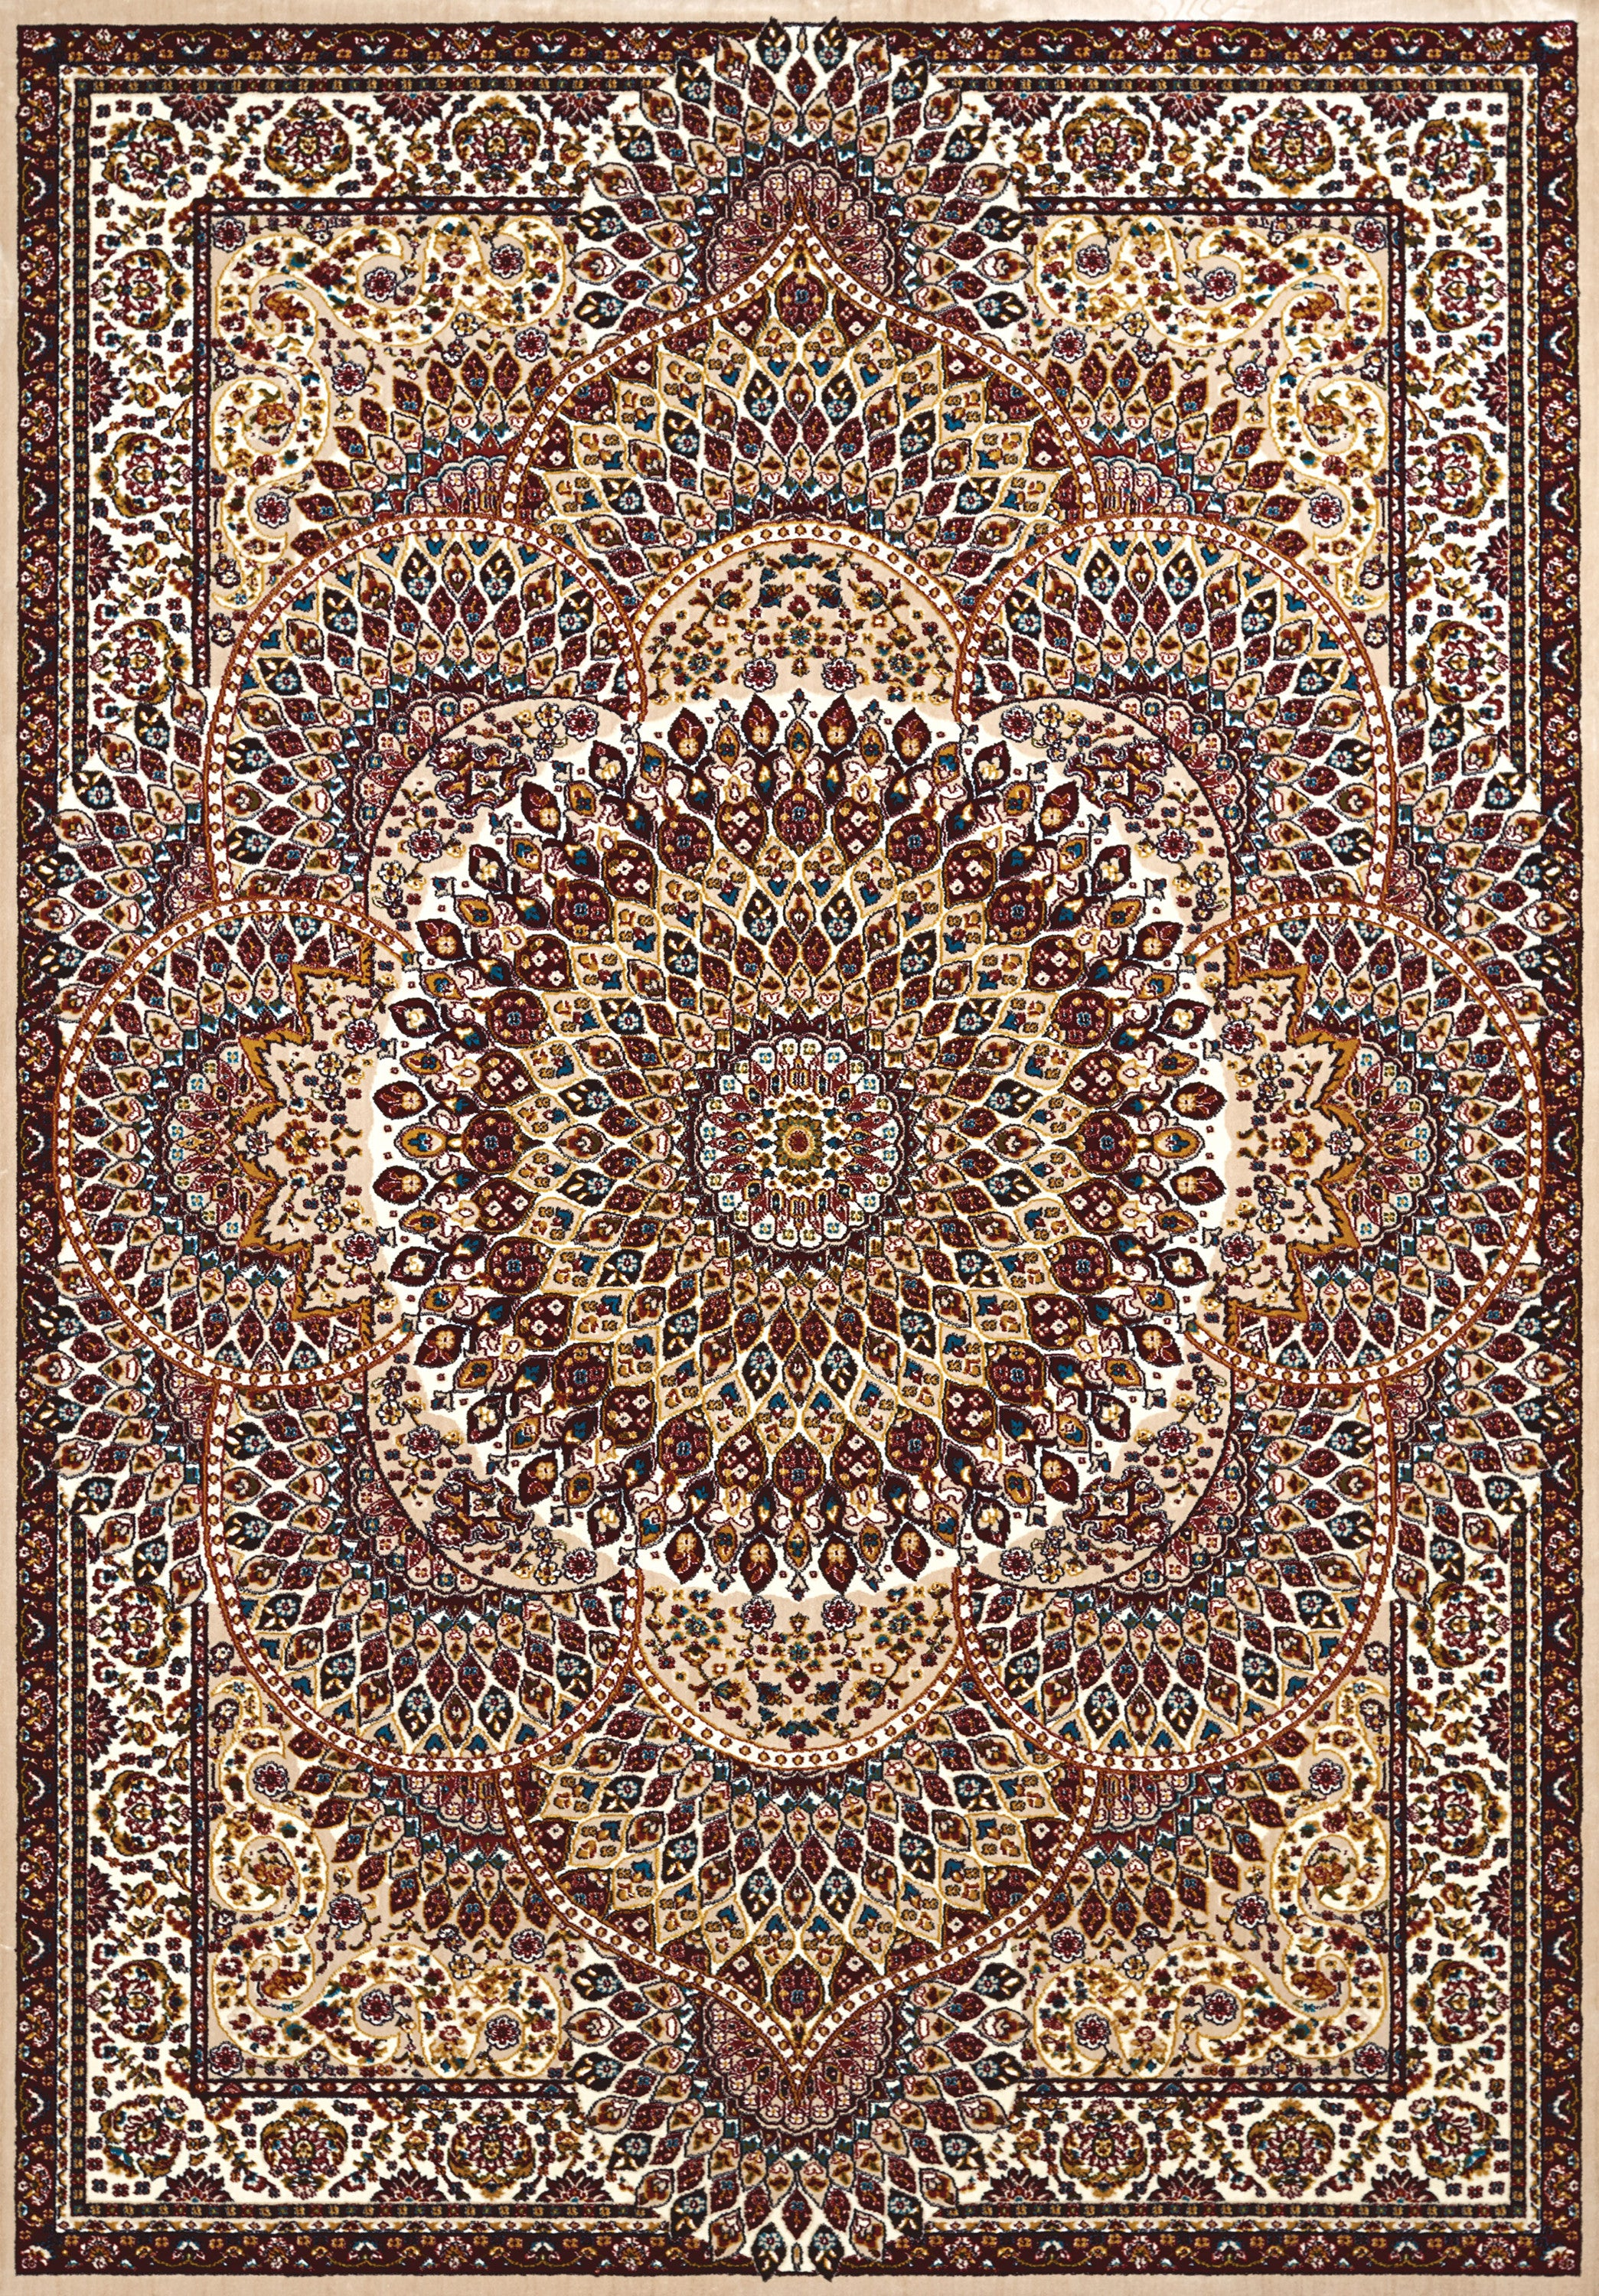 United Weavers - Antiquities Rug Collection -  SAROUK IVORY (1900-01215)